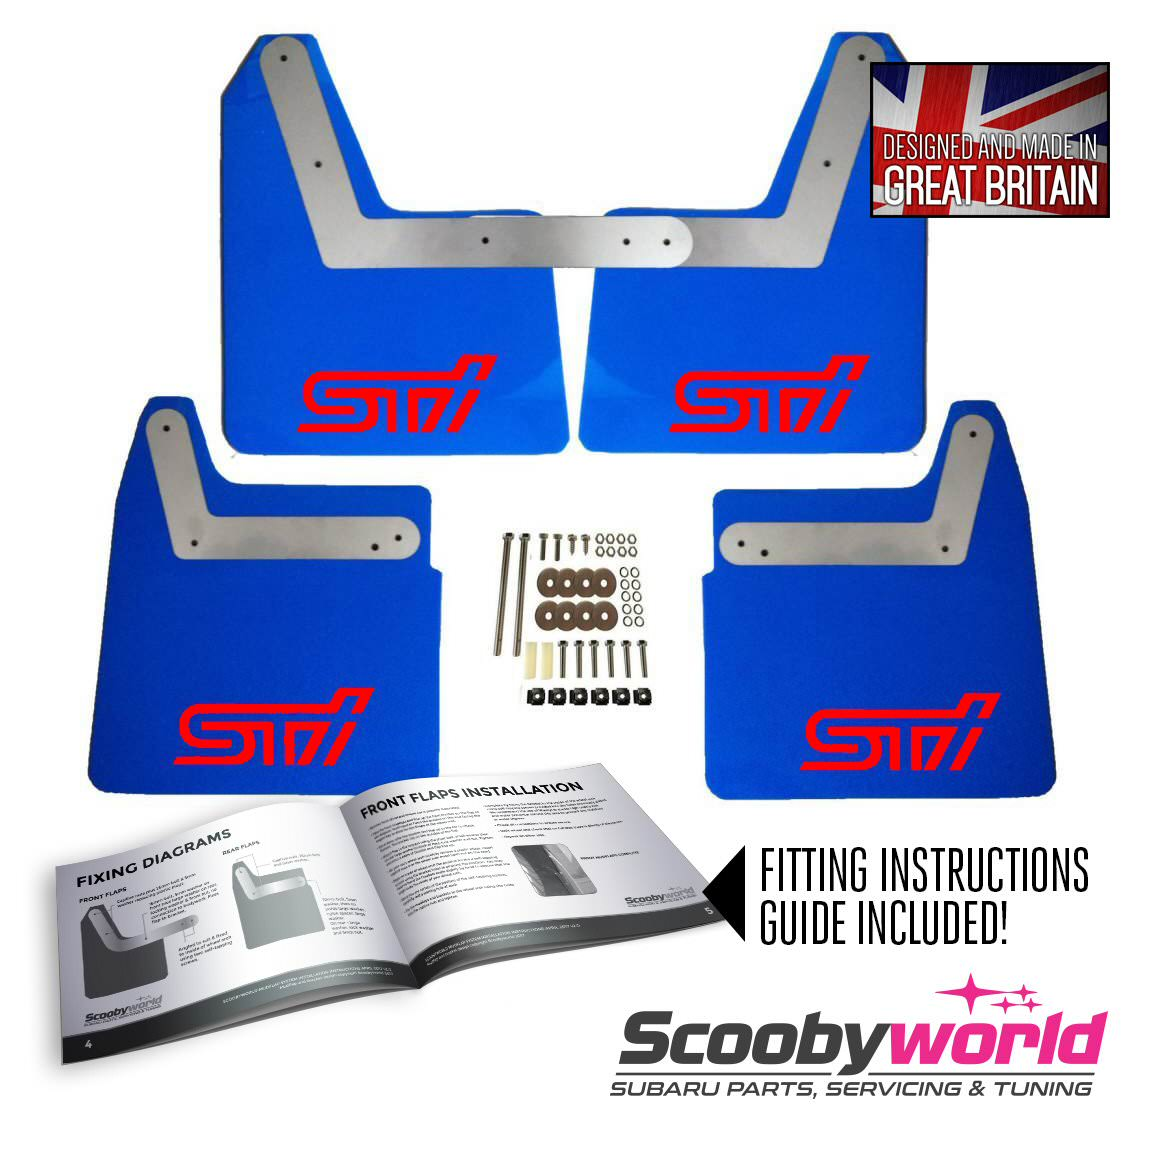 Subaru Wrx Sti Performance Parts Scoobyworld 2001 Engine Diagram Blue Mudflaps With Red Decals Impreza New Age 01 07